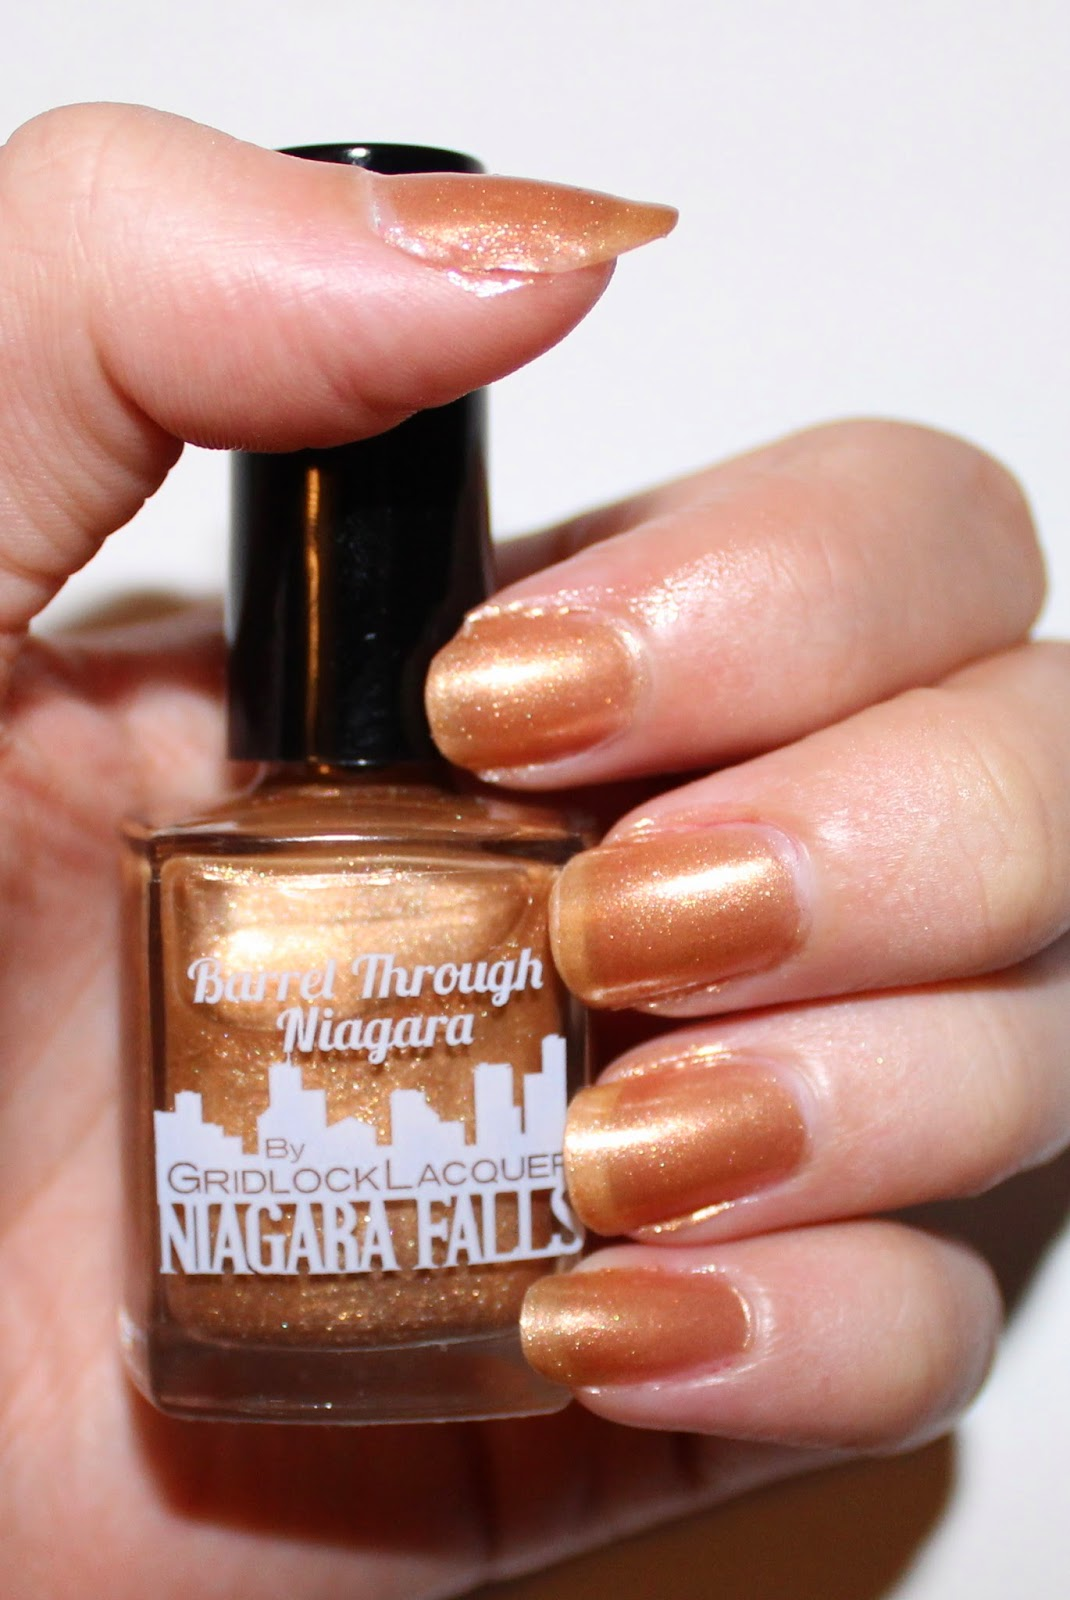 Gridlock Lacquer Barrel Through Niagara